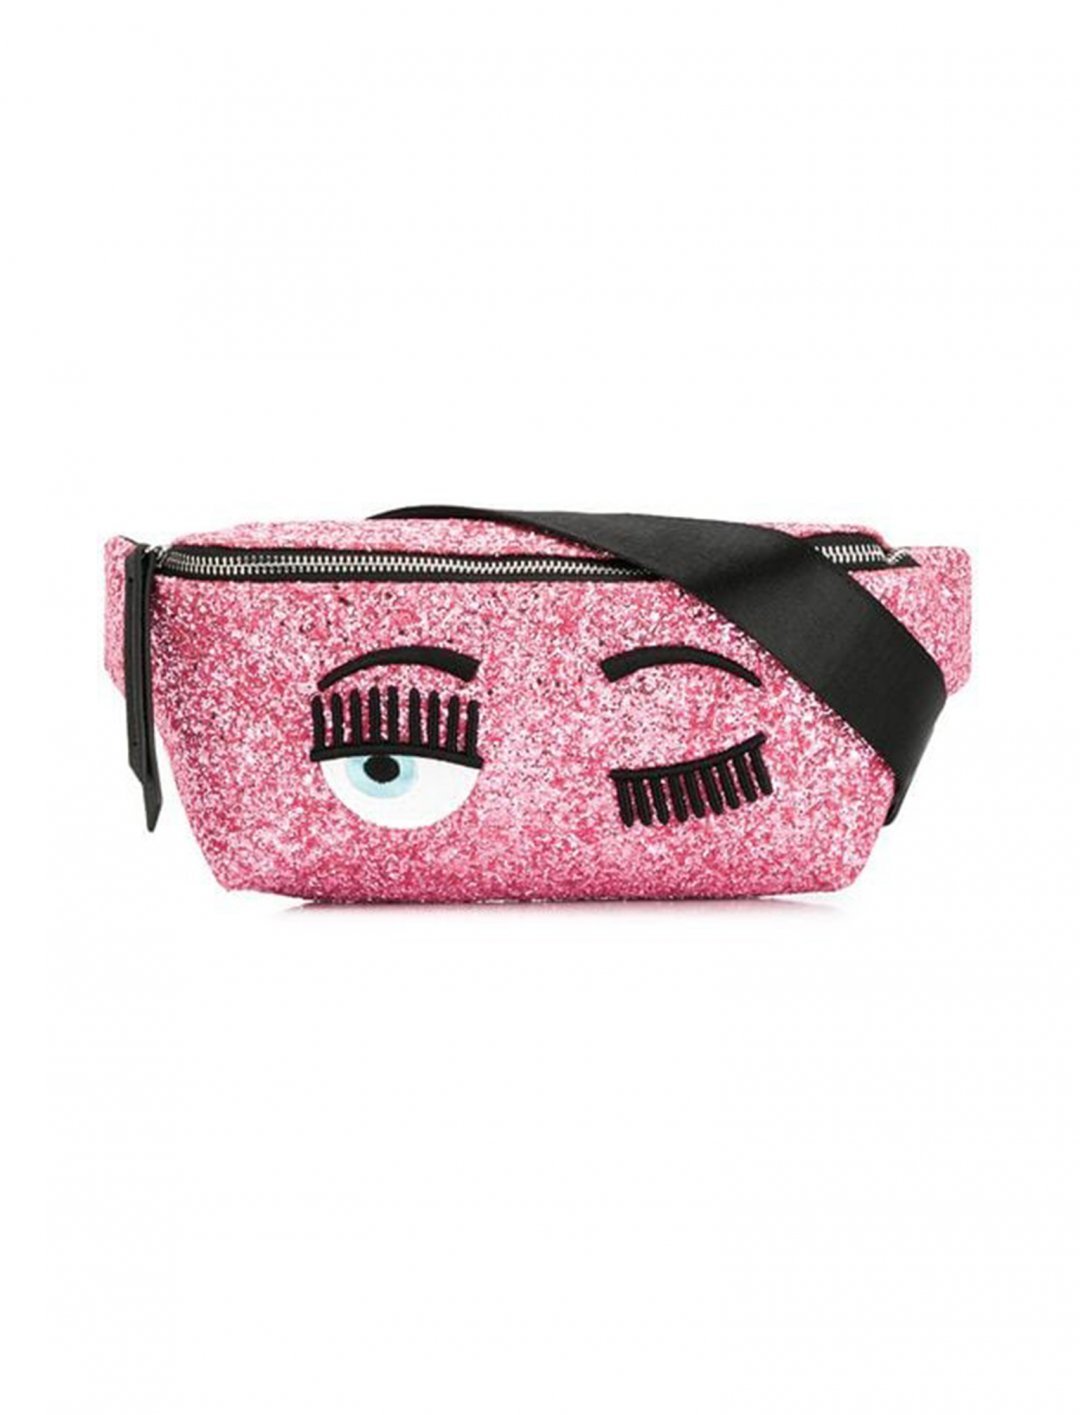 "Glitter Belt Bag {""id"":1,""product_section_id"":1,""name"":""Bags"",""order"":1} Chiara Ferragni"